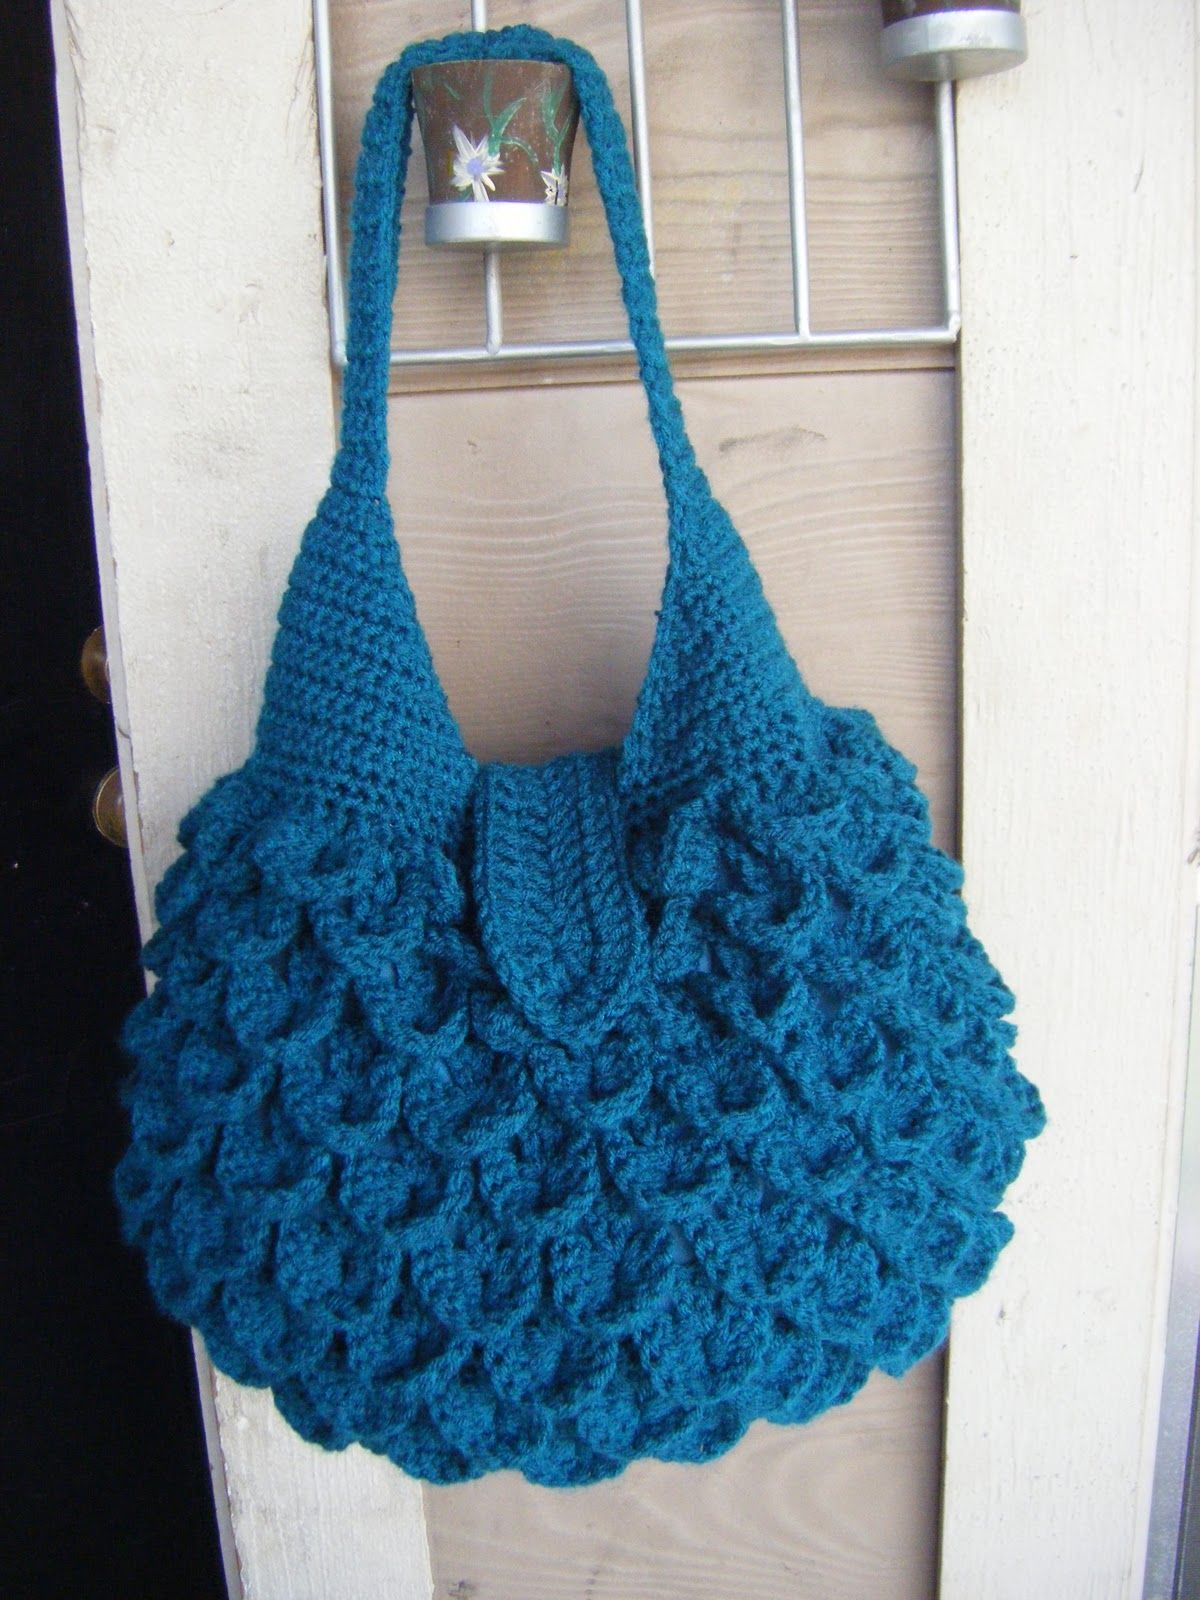 Free+Crochet+Pouch+Pattern | Crocodile Crochet Bag PATTERN | crochet ...